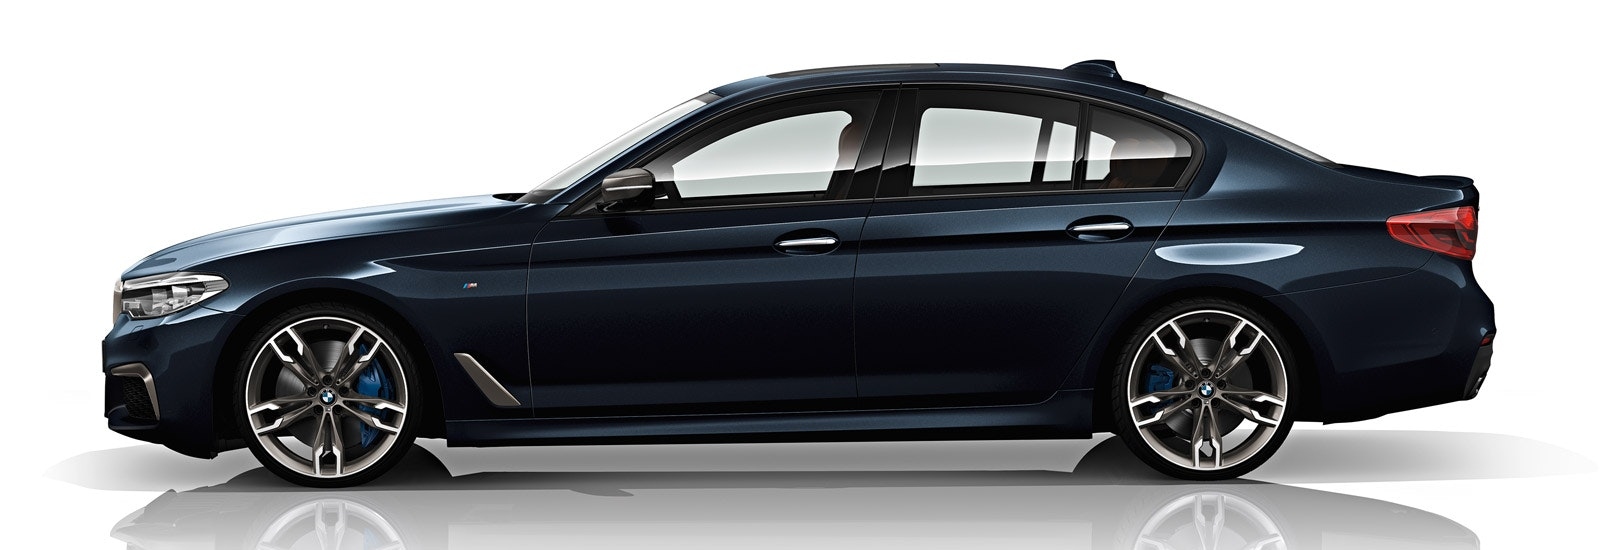 2018 BMW 550d price, specs and release date   carwow